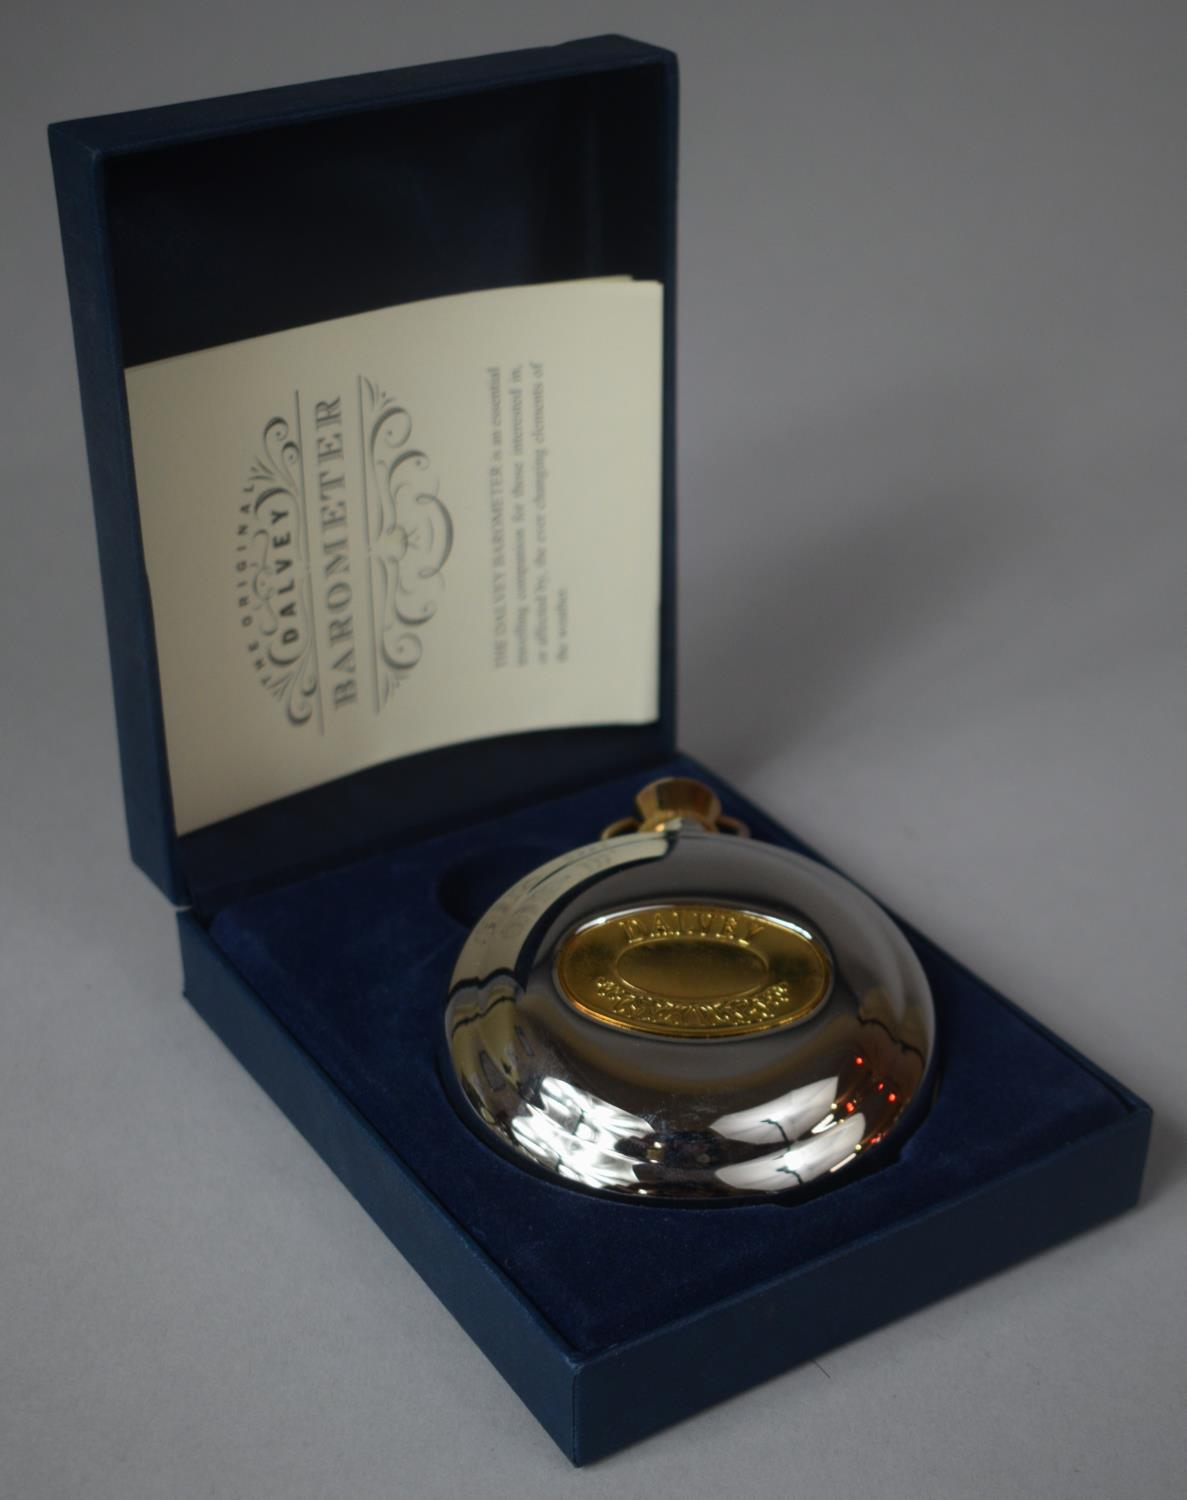 A Boxed Dalvey Barometer with Instruction Pamphlet, 8cm Diameter - Image 2 of 2